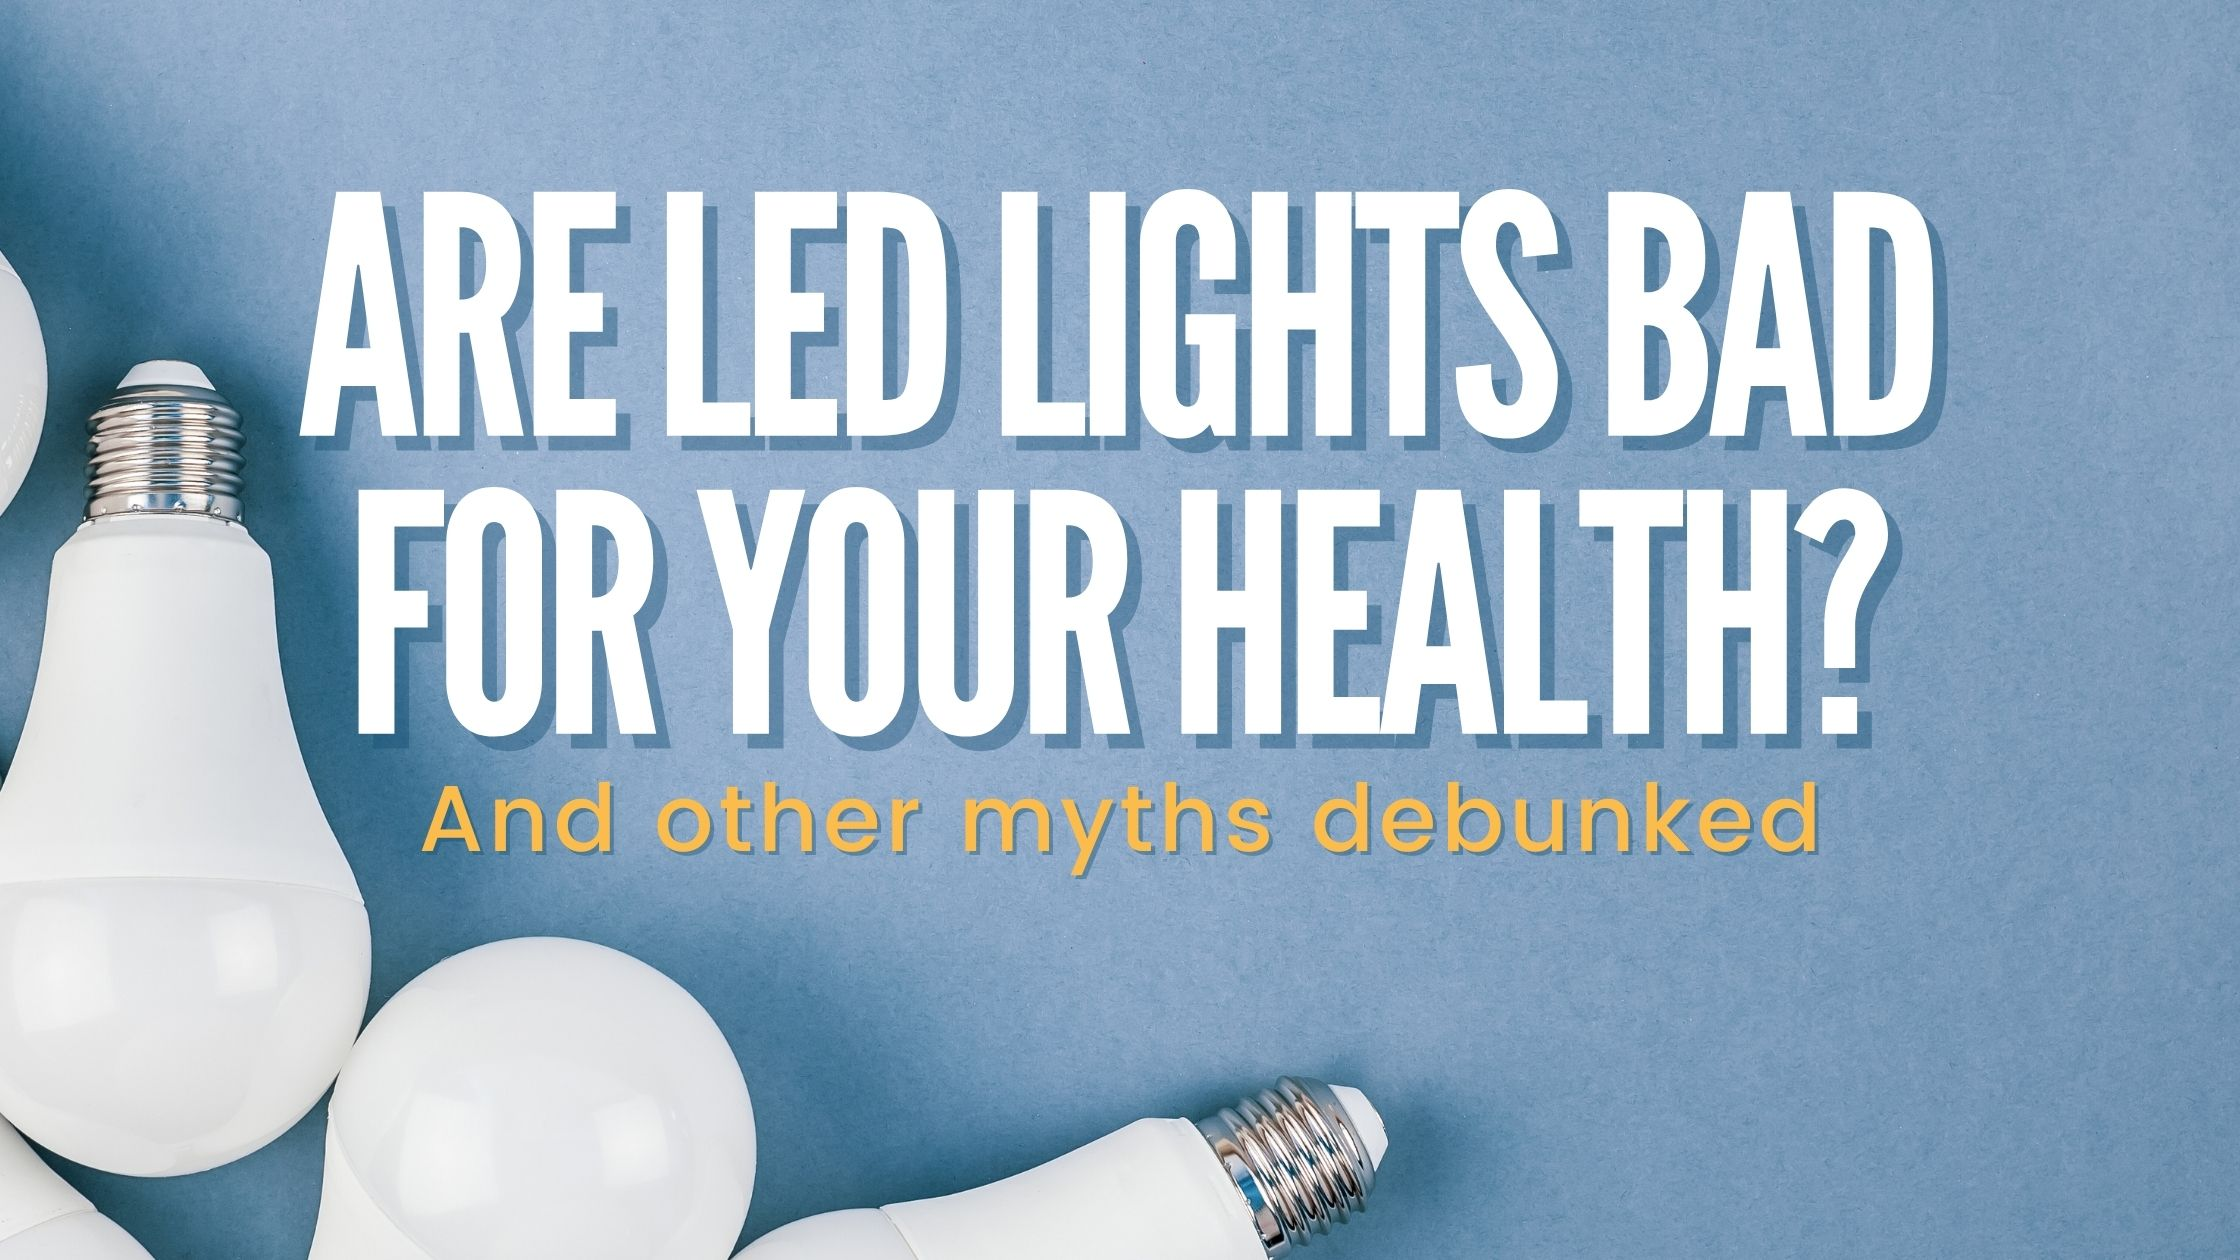 Are LED Lights Bad for Your Health